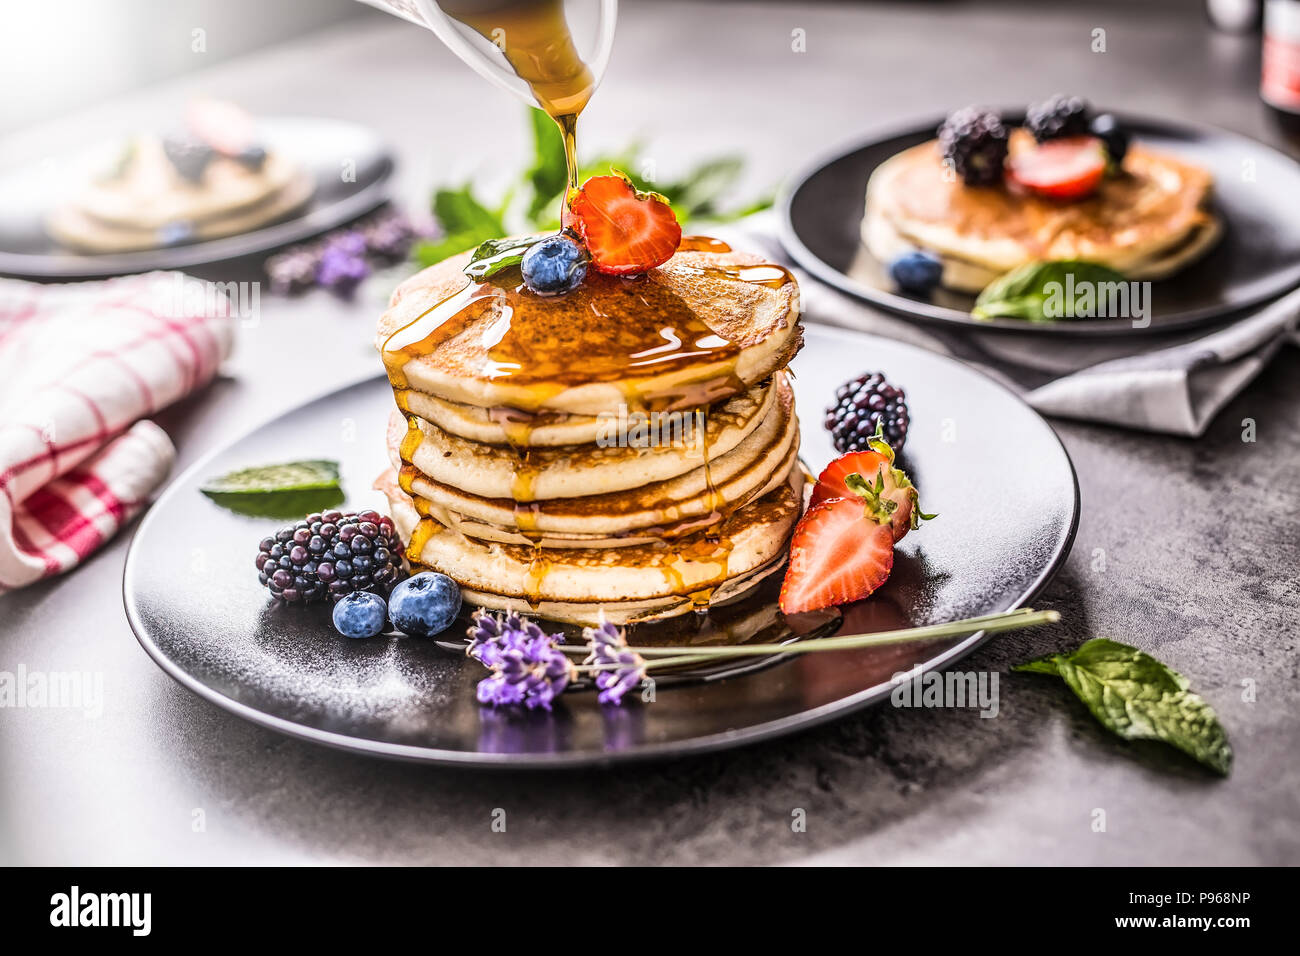 Pancakes with strawberries blackberries blueberries lavender mint leaves and maple syrup. - Stock Image